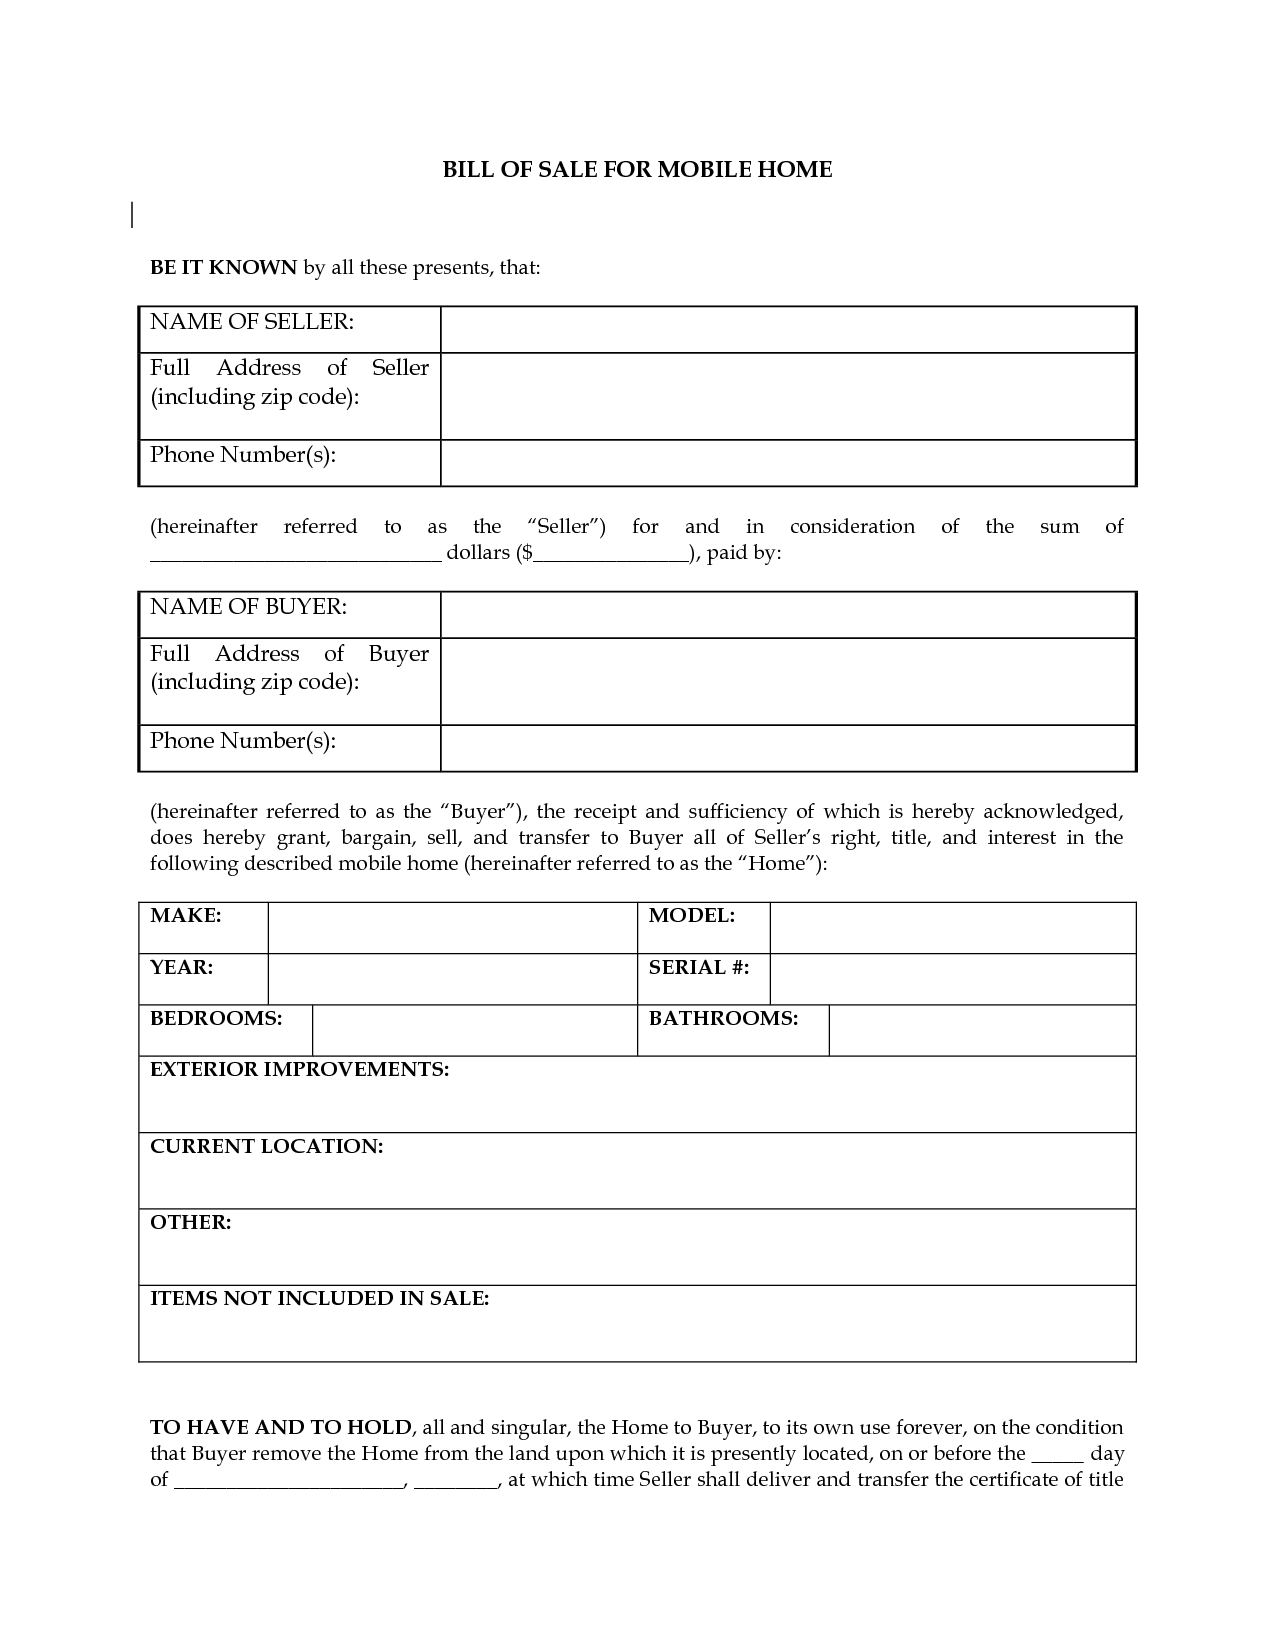 Free Printable Bill Of Sale Camper Form (Generic) - Free Printable Bill Of Sale For Mobile Home